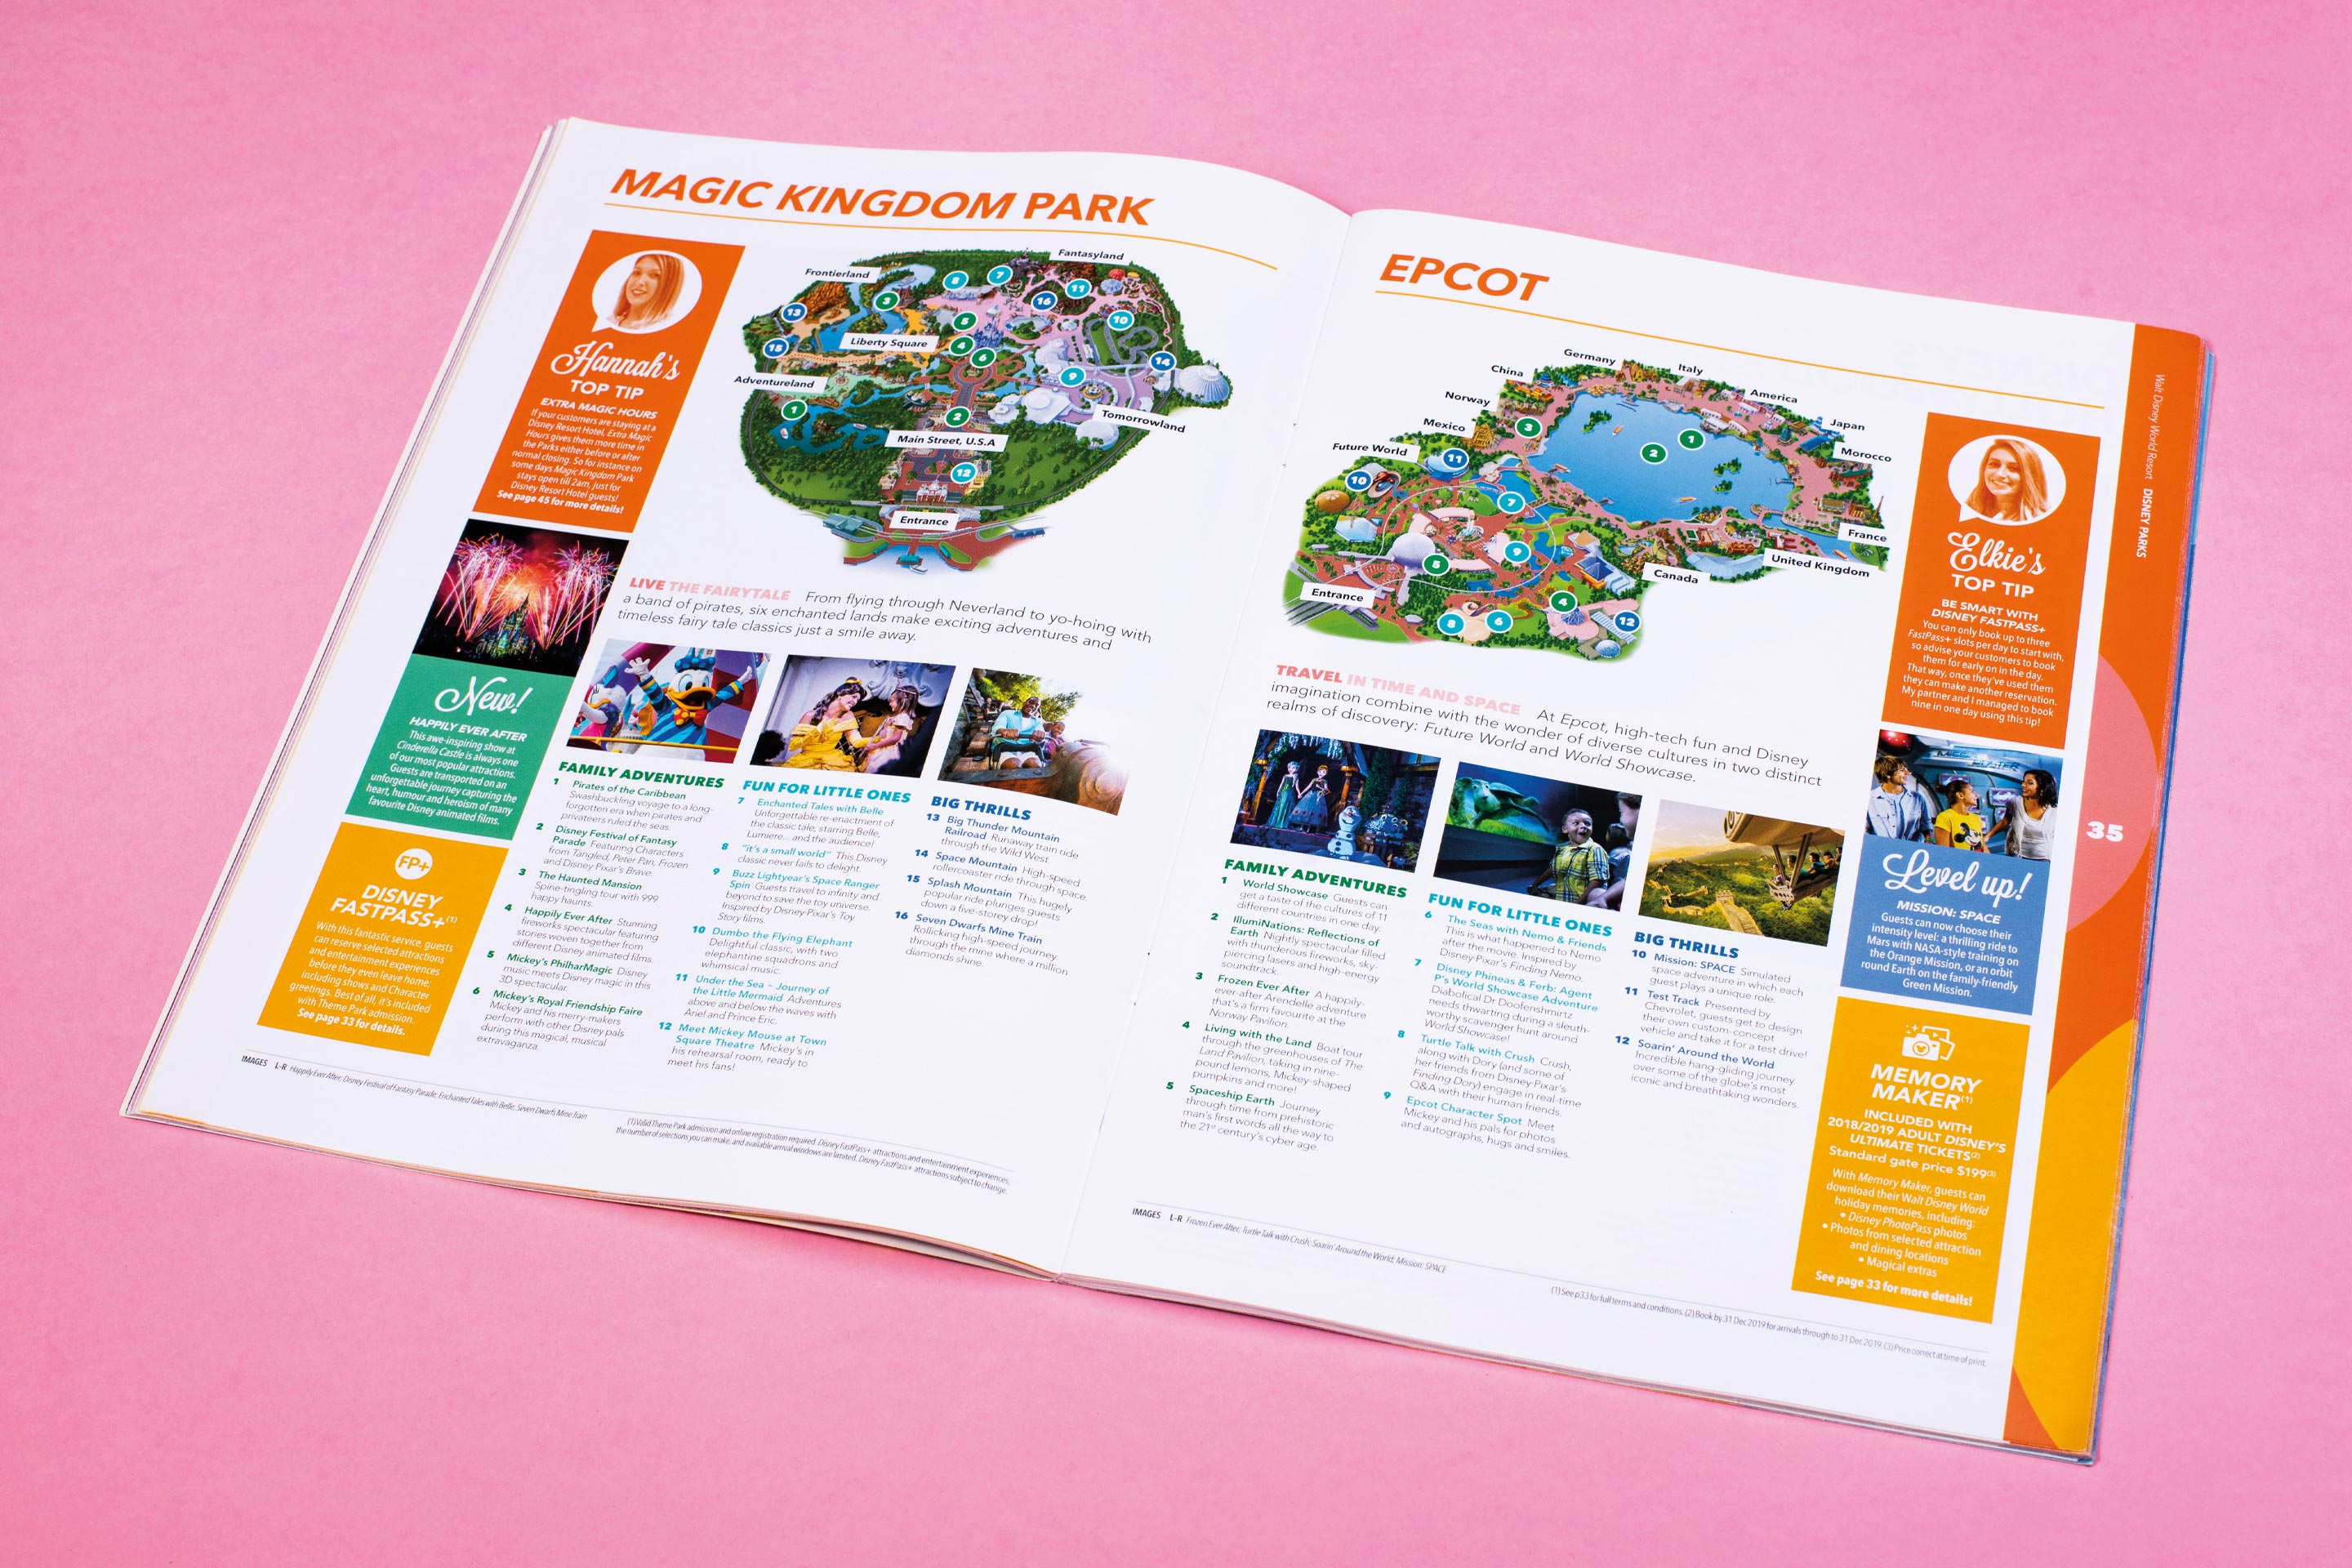 Disney's Travel Agent Guide Parks Spread